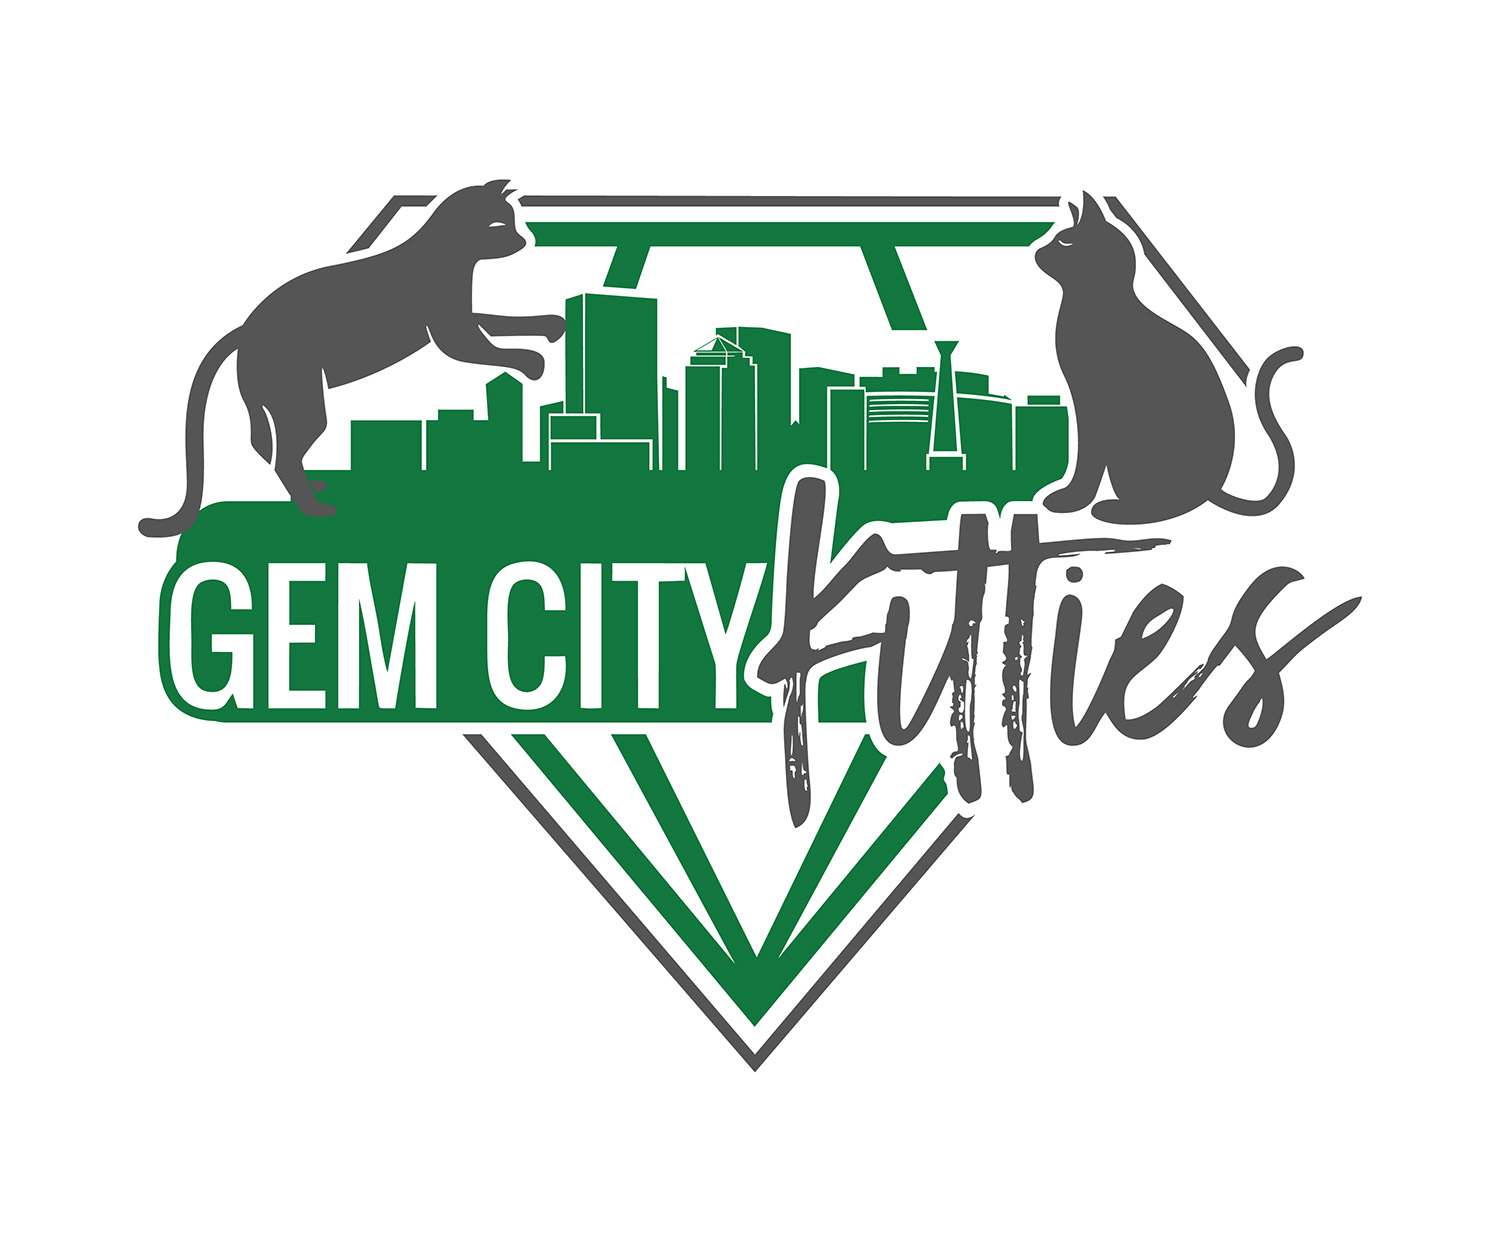 Our rescue partner - Gem City Kitties is a 501(c)(3) non-profit created to partner with Dayton's Cat Café, Gem City Catfé. Together, both organizations work to improve the lives of cats in Dayton. We collaborate with local rescues and shelters to help find homes for cats in need, as well as educate about spay and neuter and care for community cats.